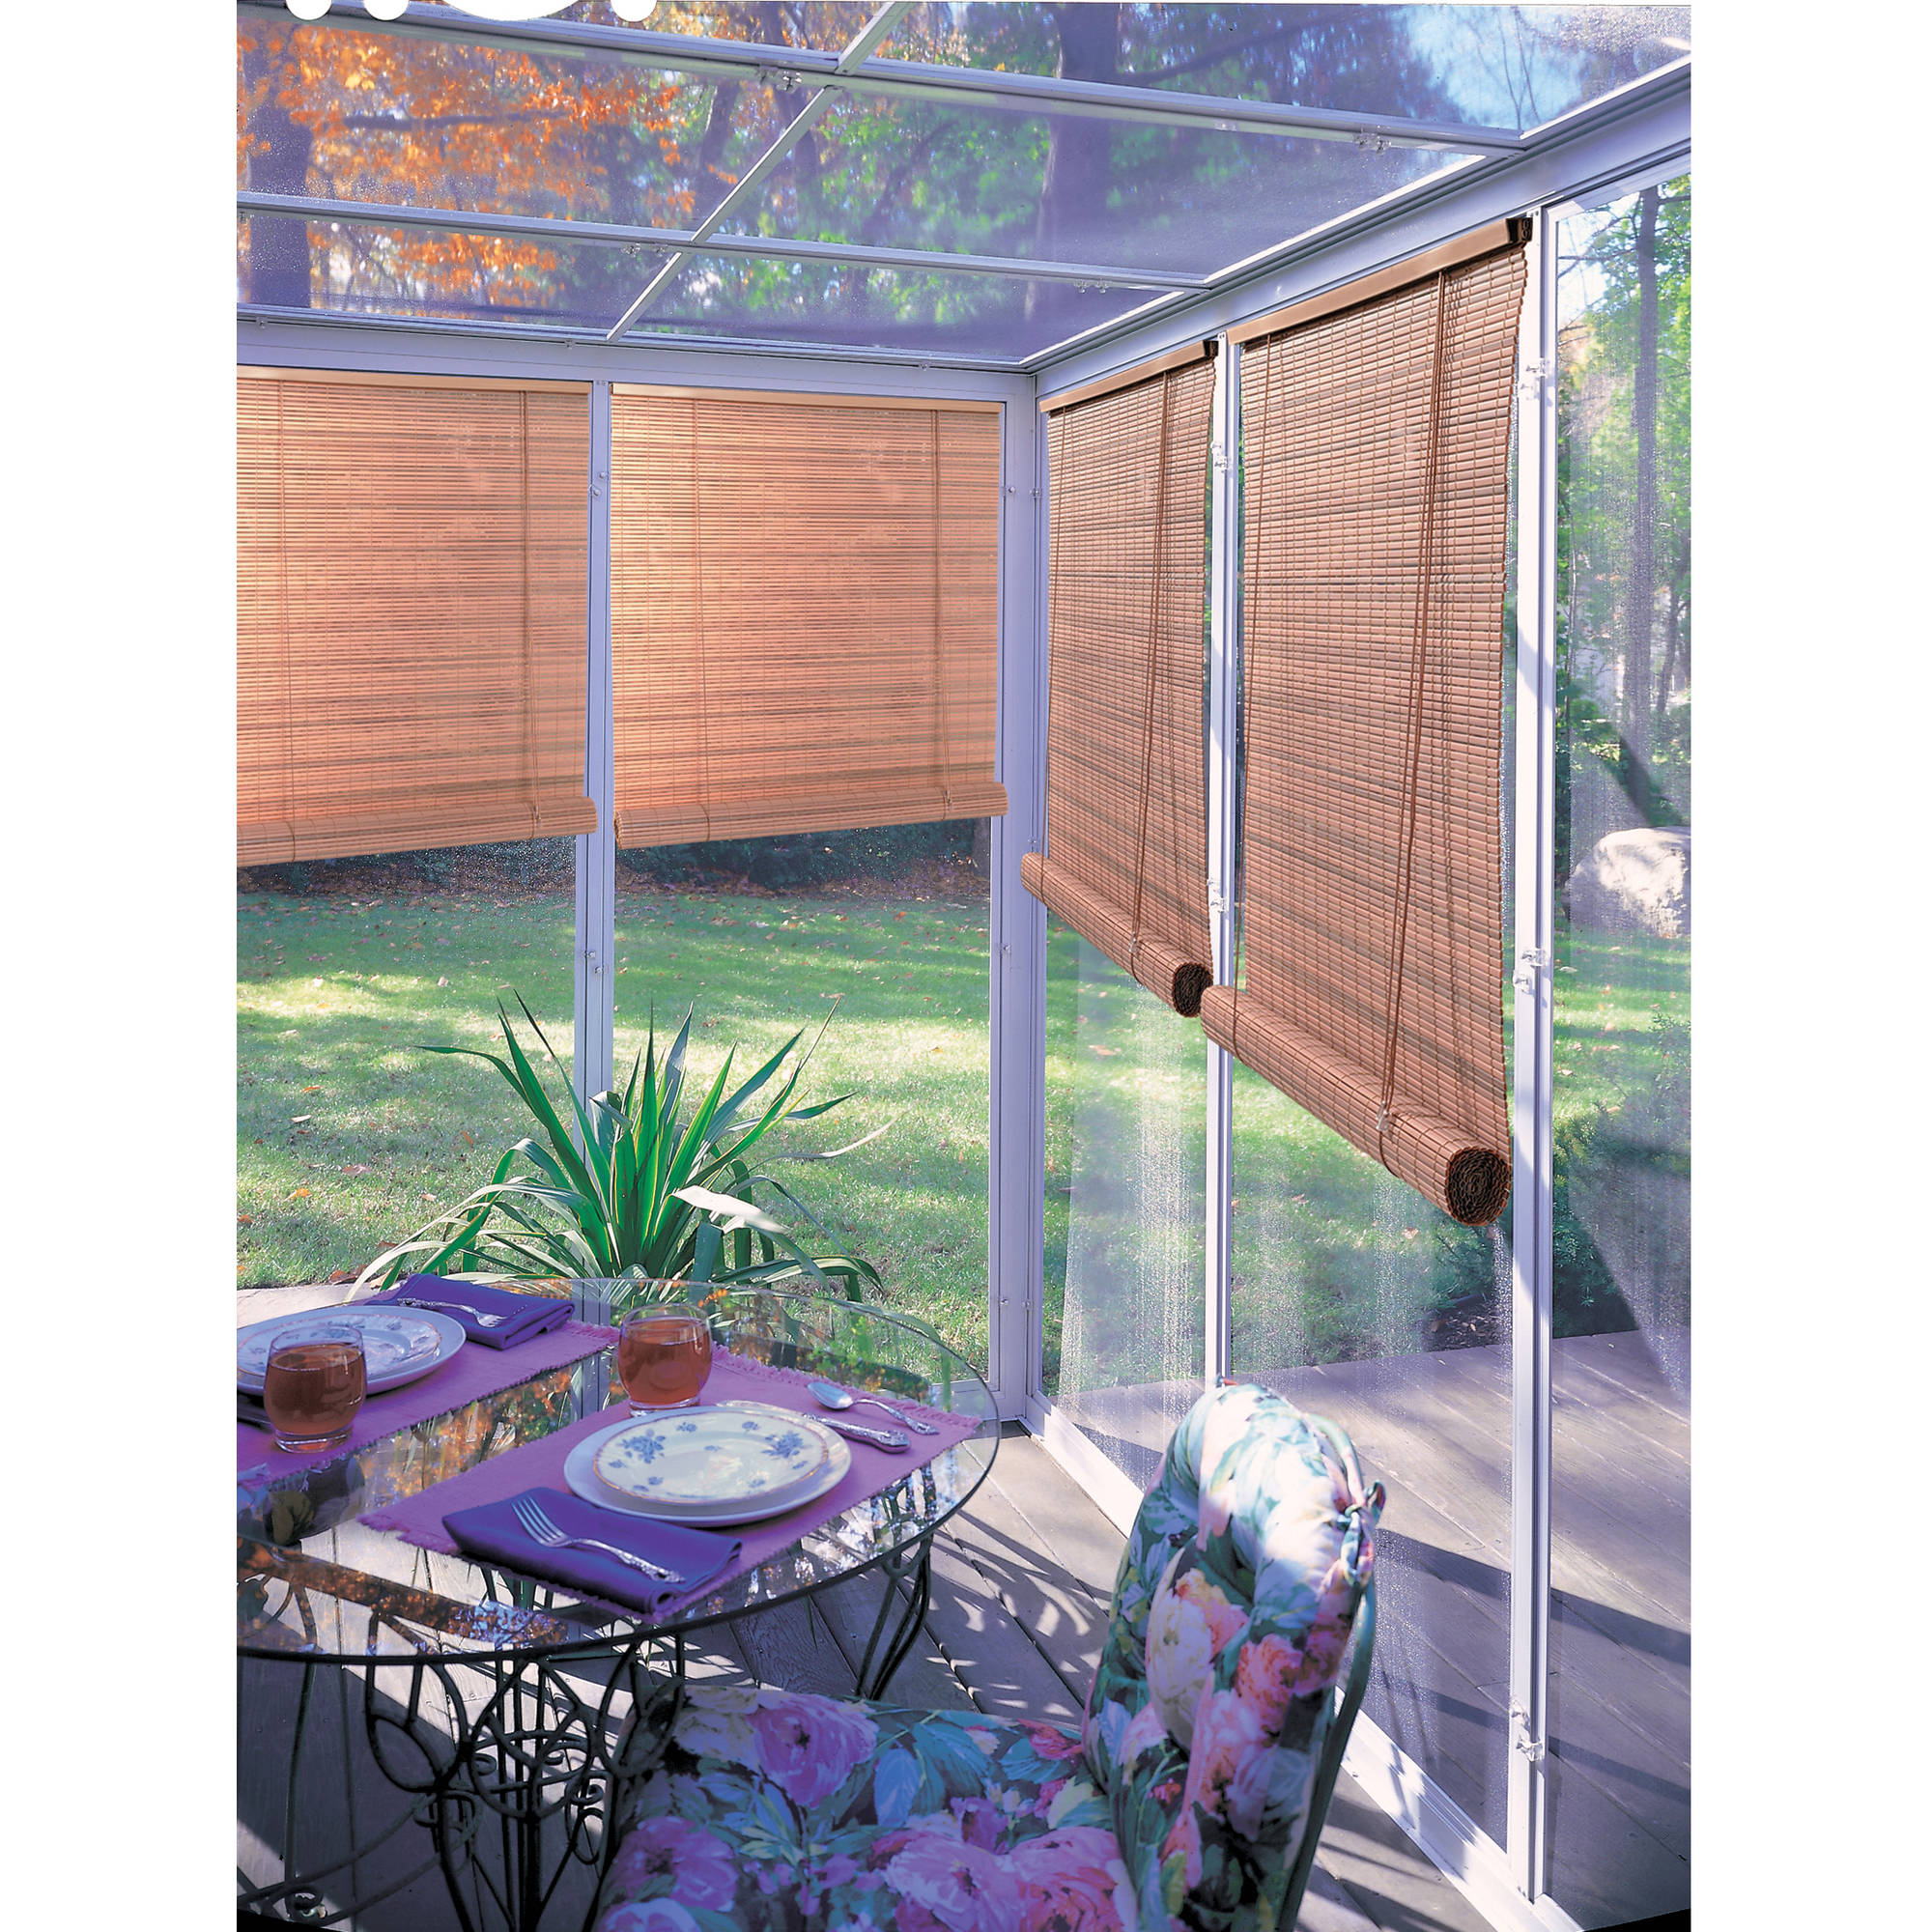 Window blinds for sale window shade price list brands amp review - Window Blinds For Sale Window Shade Price List Brands Amp Review 39